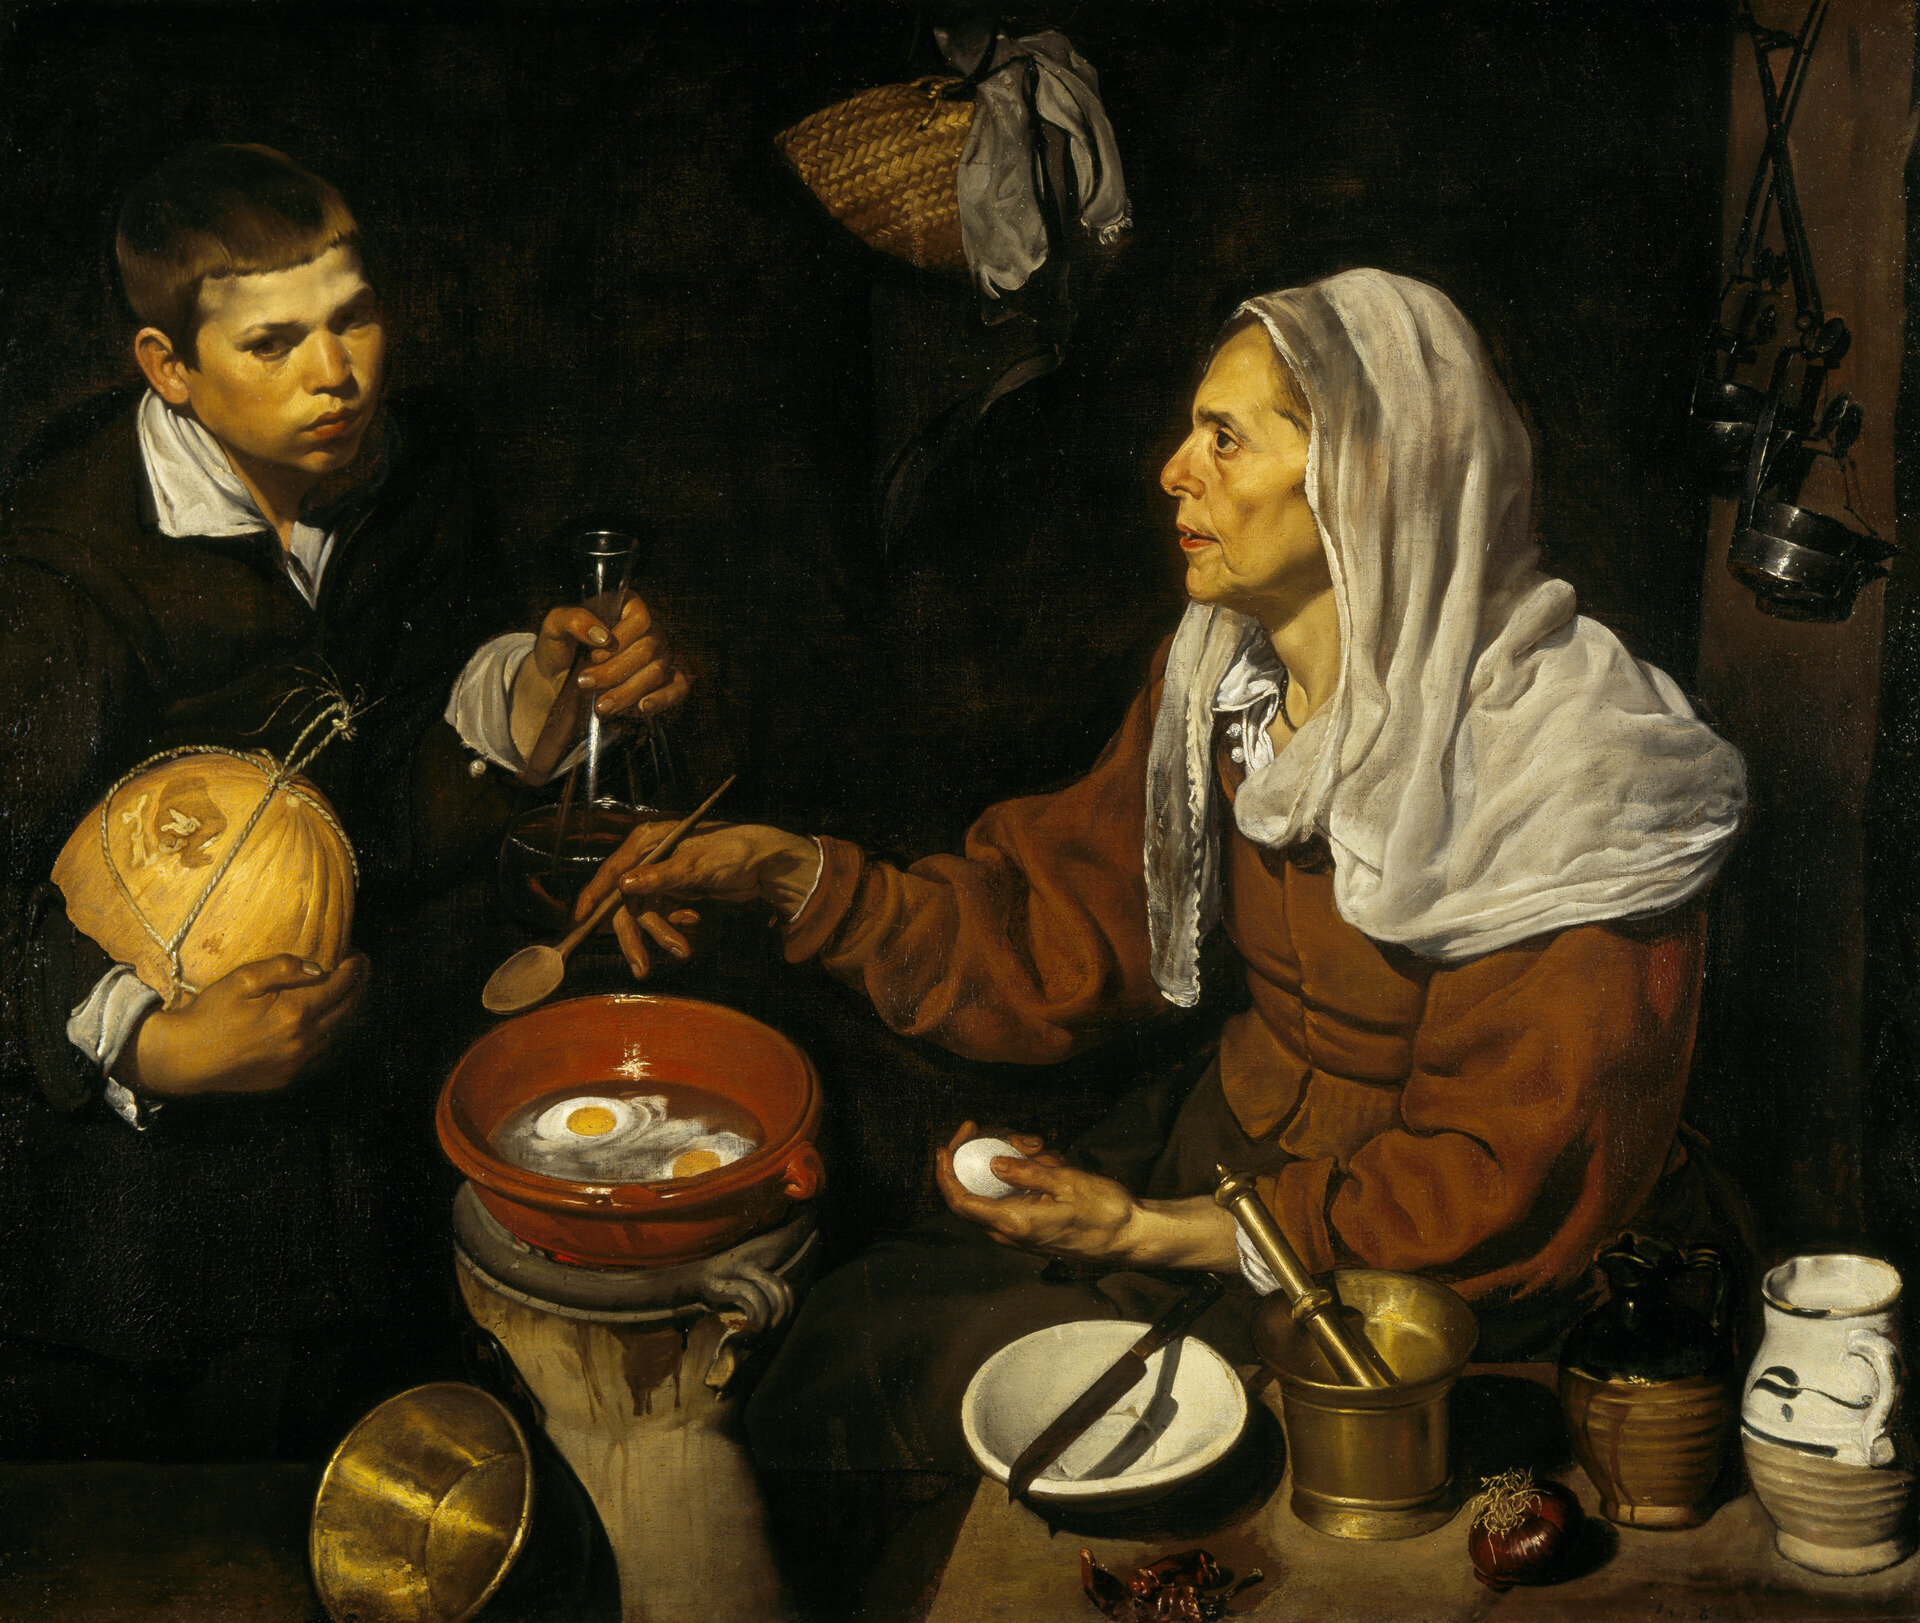 Velázquez, An Old Woman Cooking Eggs, 1618, Oil on Canvas, 100.5cm x 119.5cm, courtesy of https://www.nationalgalleries.org/